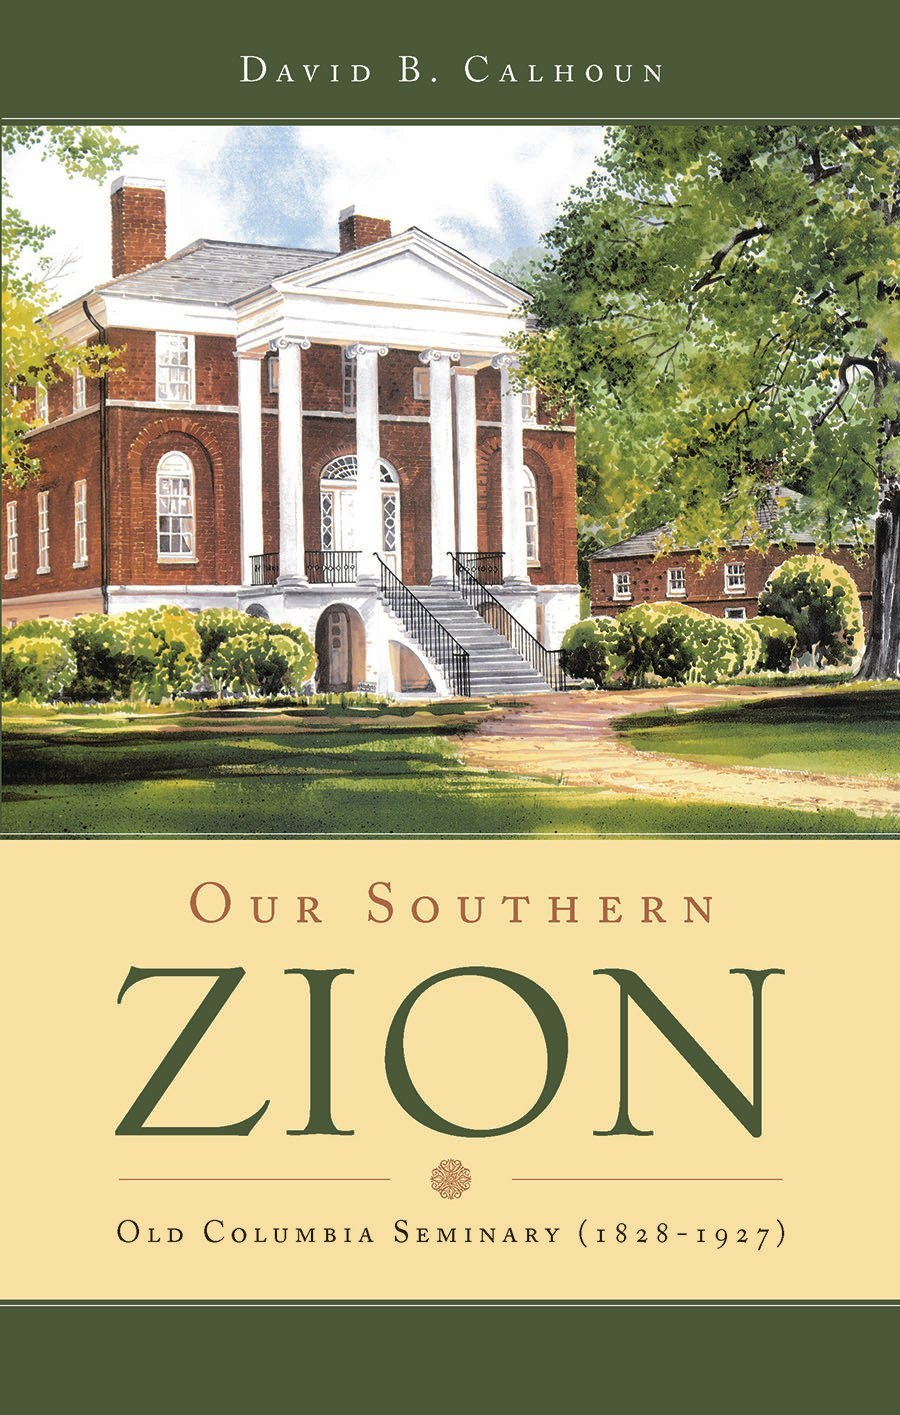 Our Southern Zion